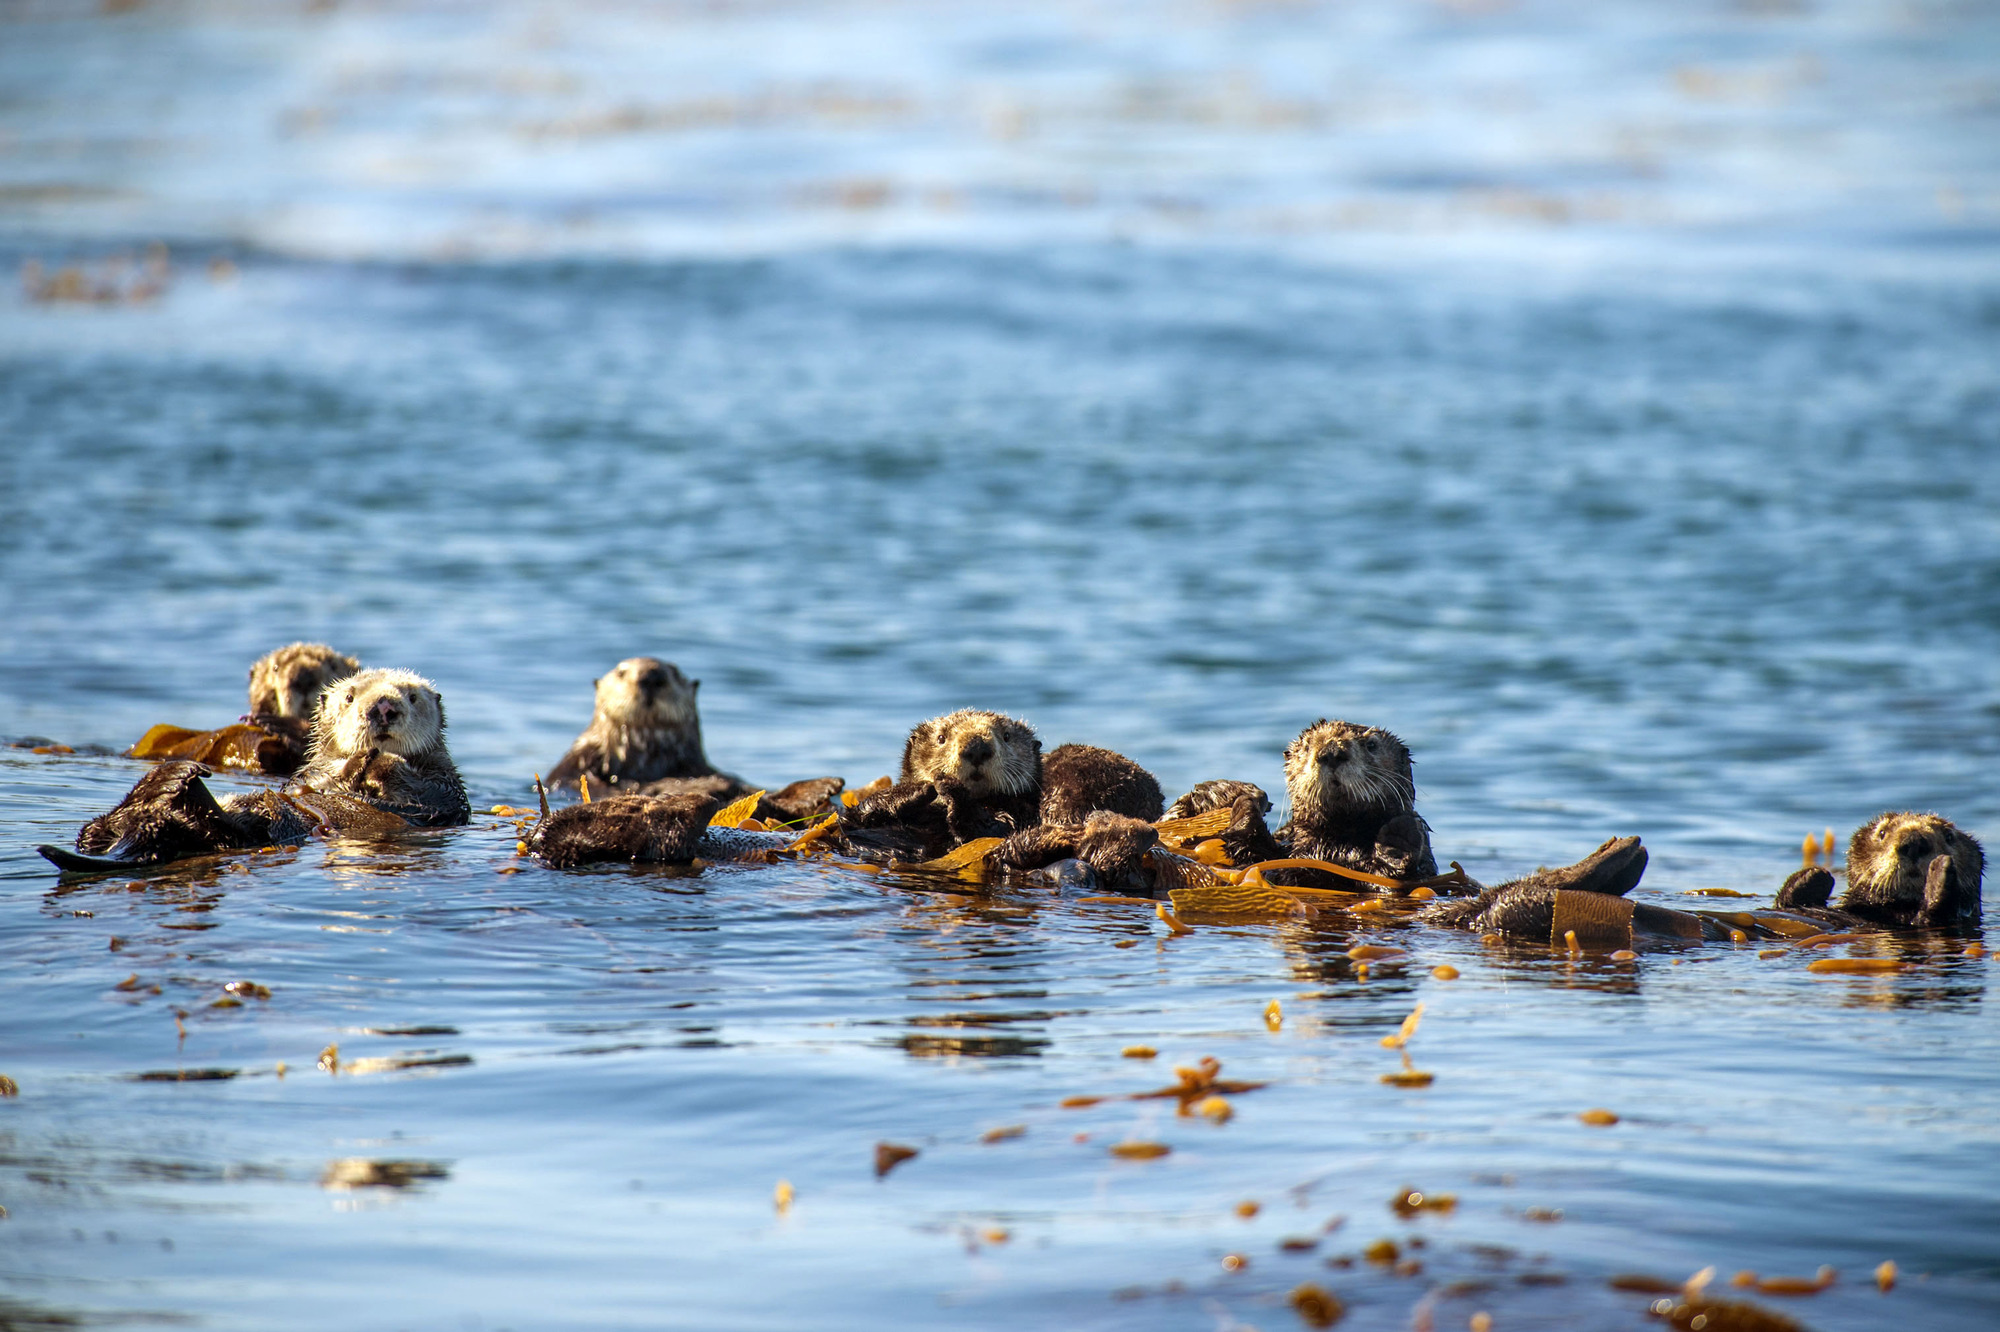 Sea otters (Enhydra lutris), Monterey Bay, California, USA. Sea otters must eat around 30% of their body weight every day but, when not hunting, they rest by floating on their backs, frequently wrapping themselves in fronds of kelp for better stability (BBC, JG)